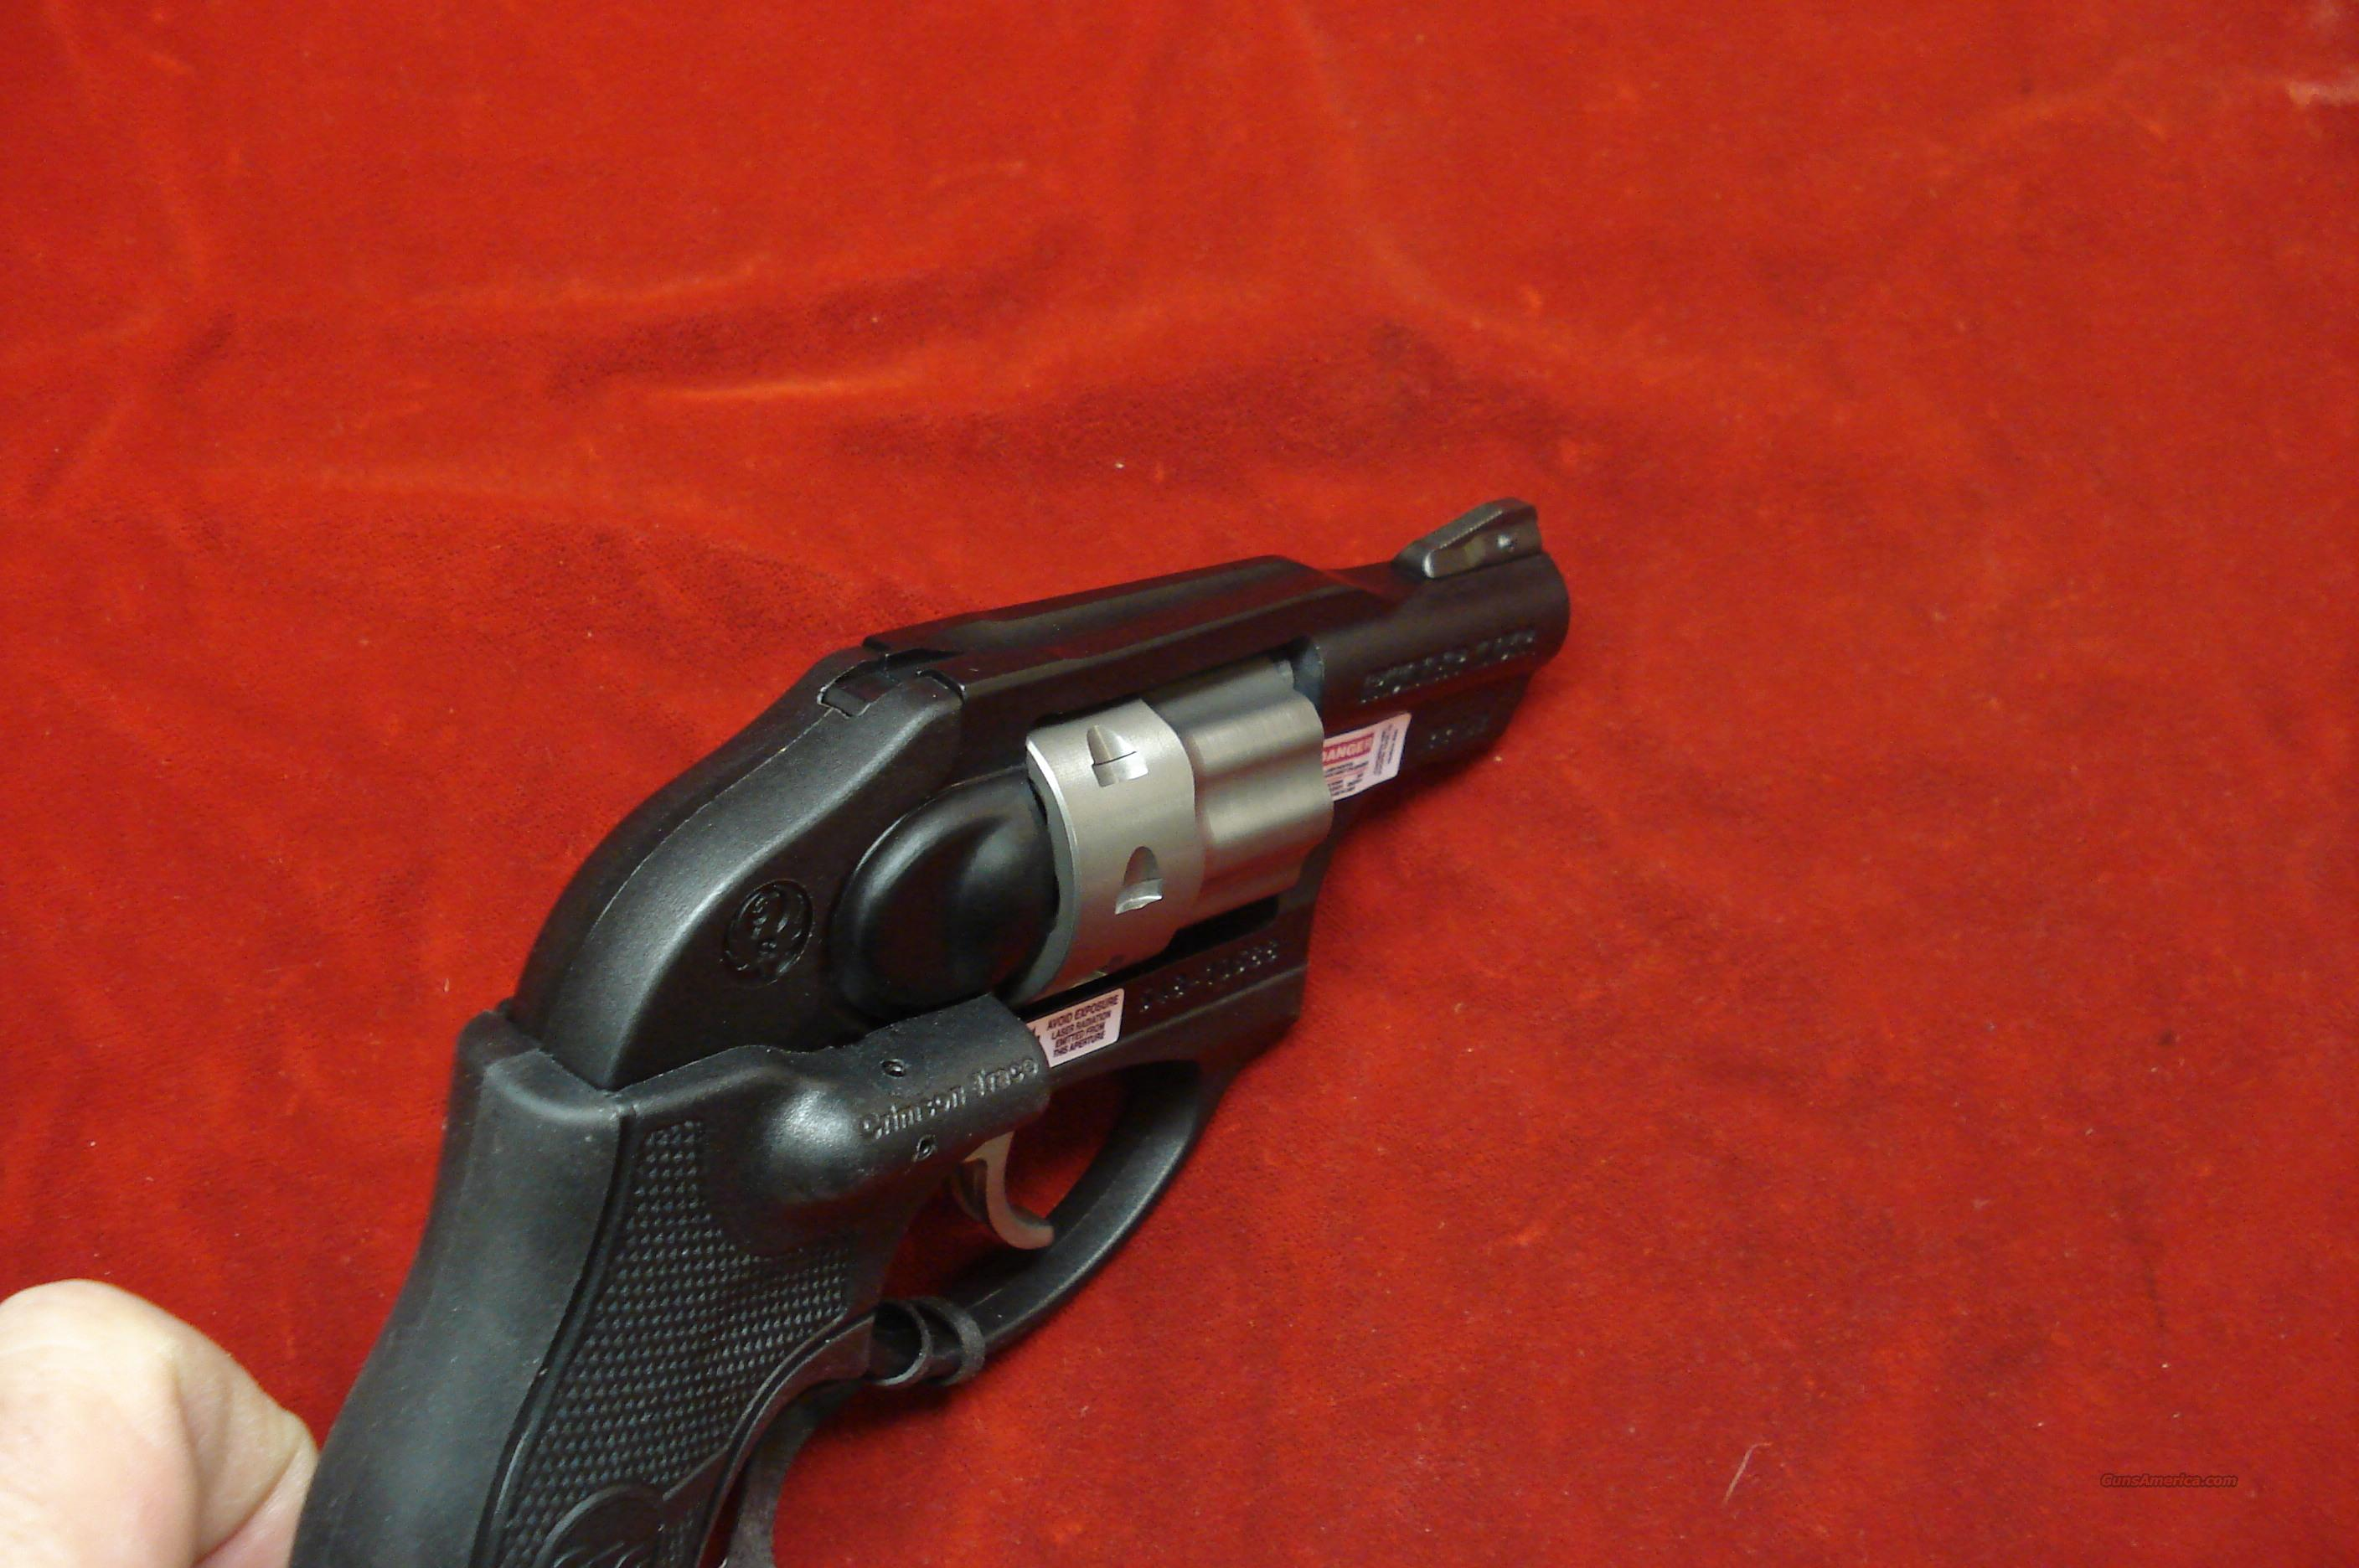 Ruger lcr 22lr cal w factory crimson trace grips new lcr 22 lg